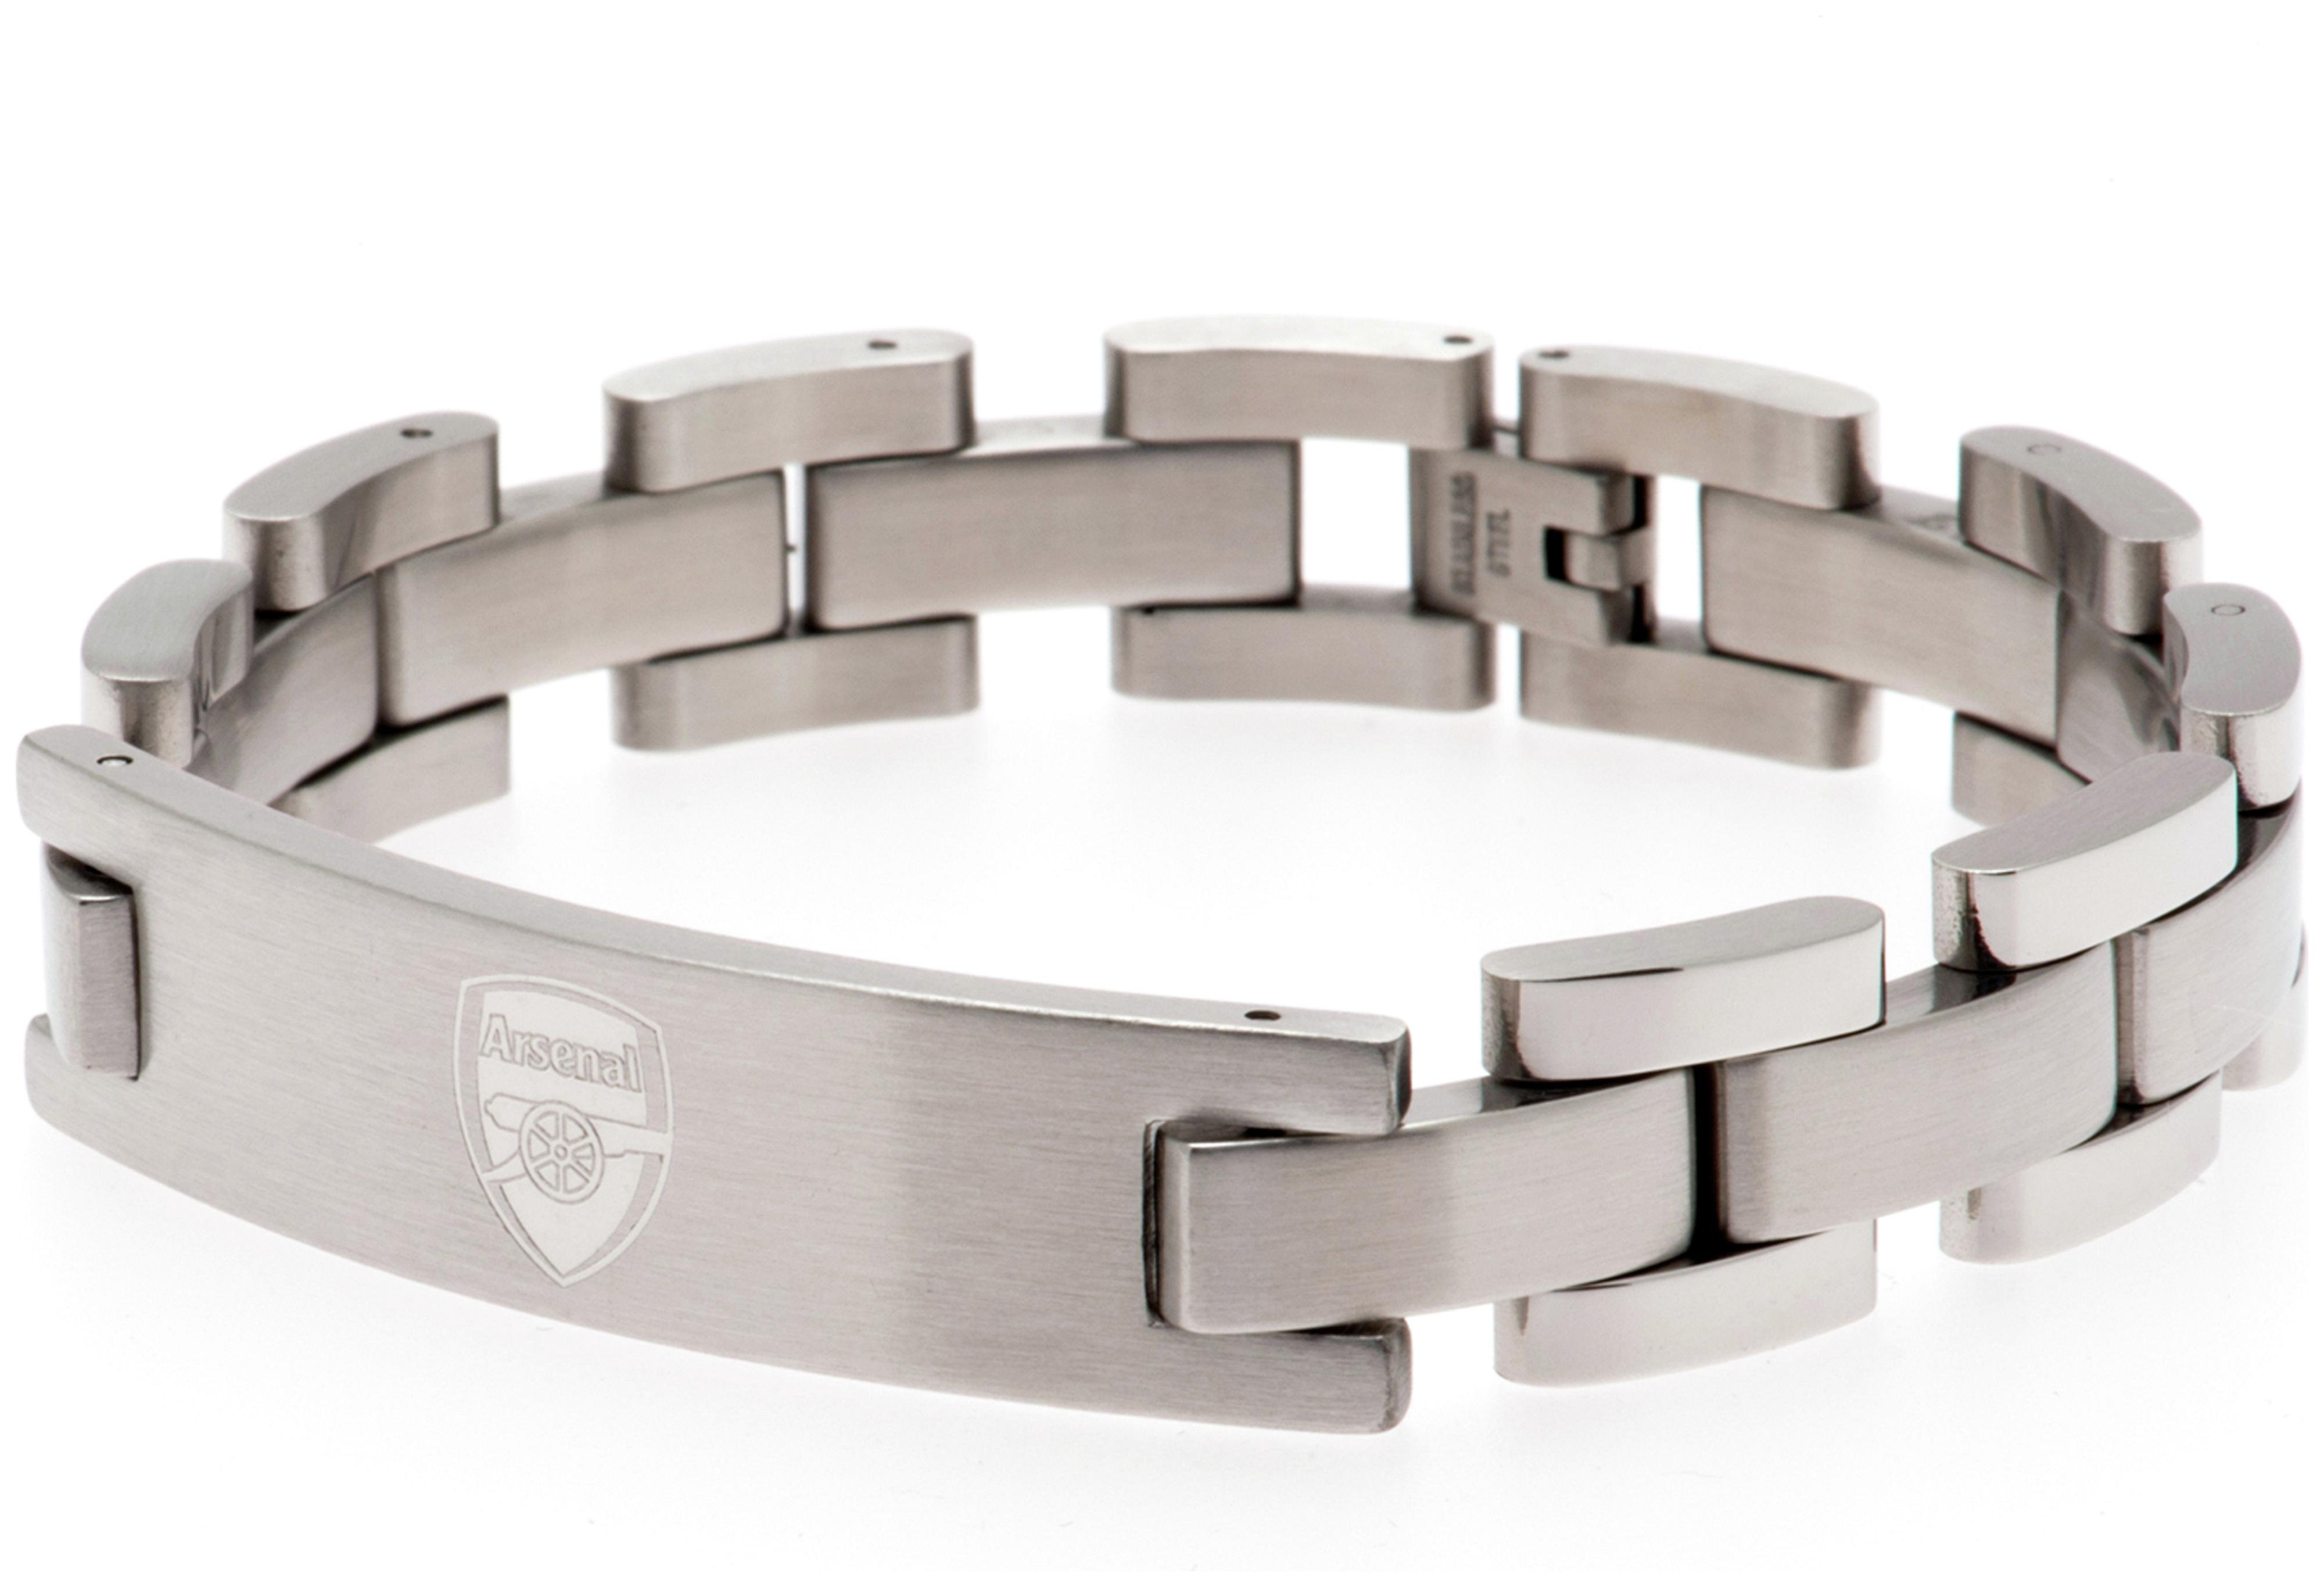 Image of Arsenal FC - Crest - Stainless Steel and Leather - Bracelet